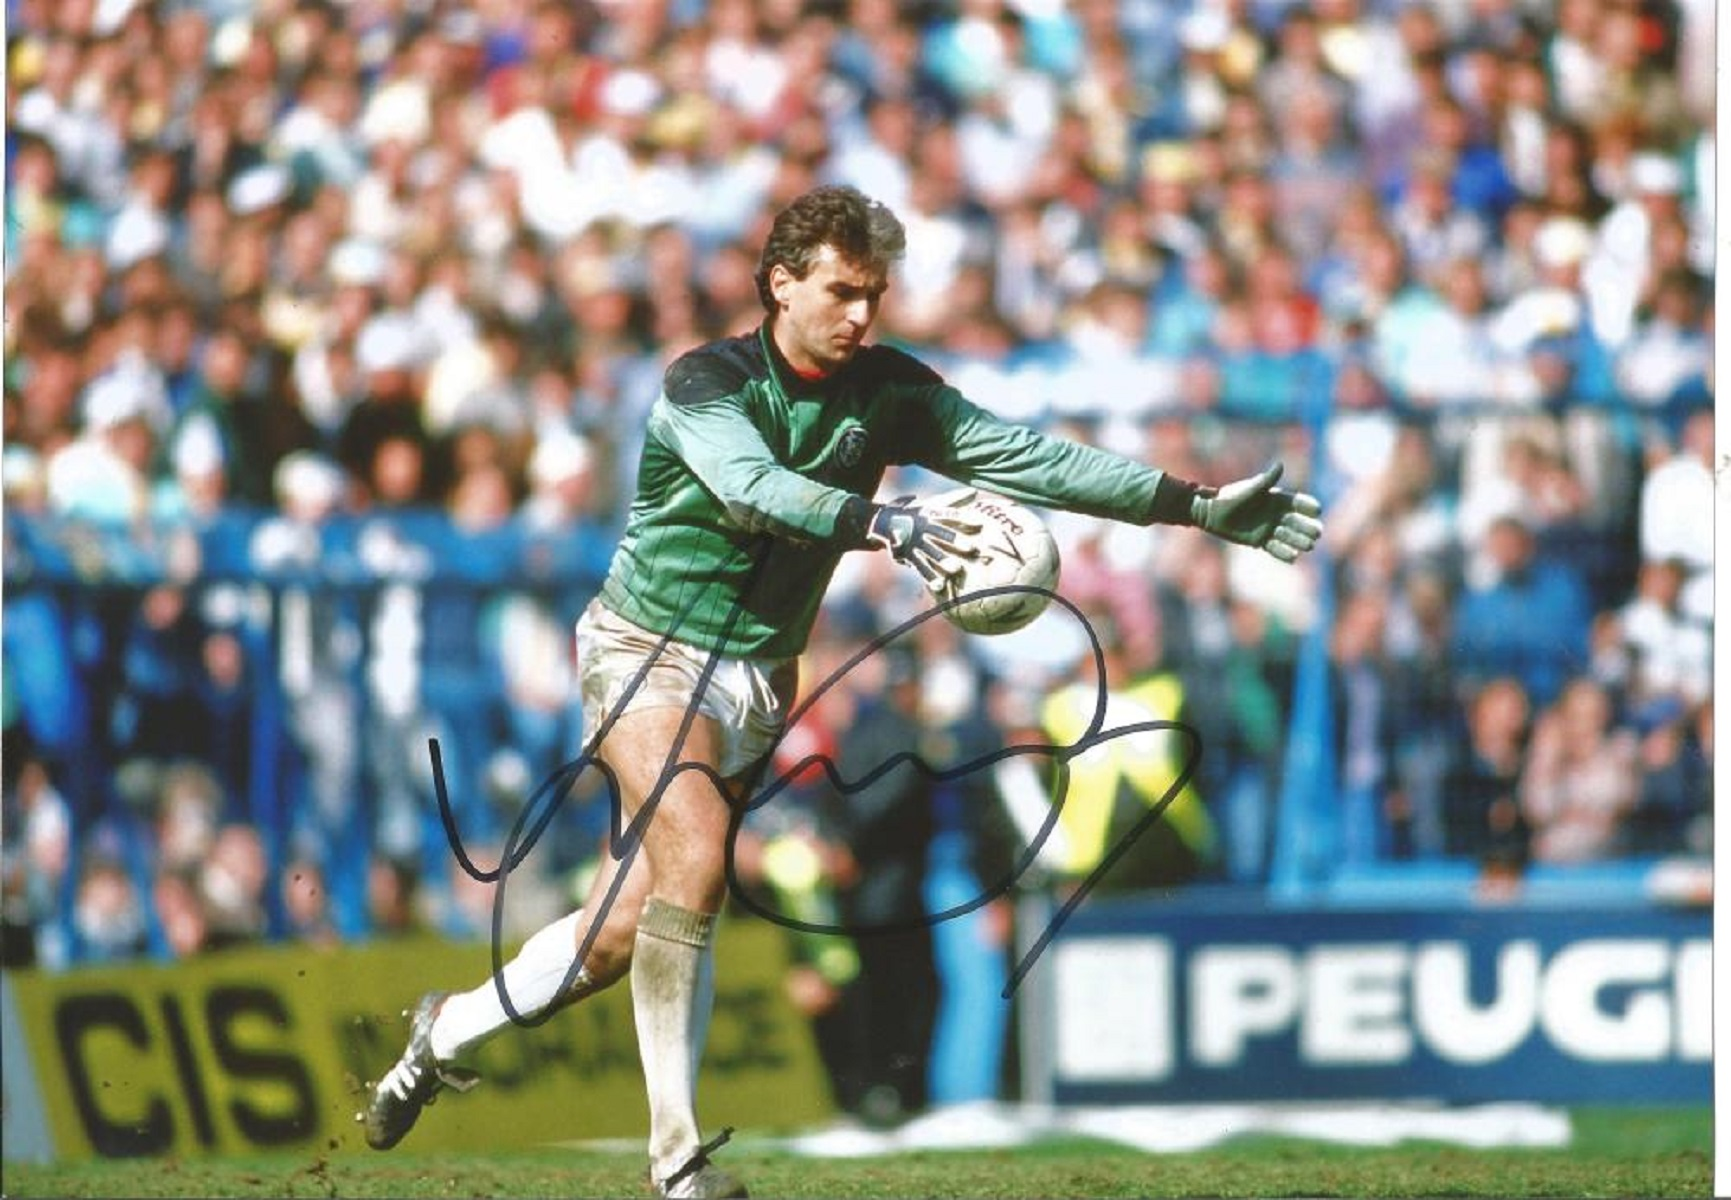 Mervyn Day Signed Leeds United 8x12 Photo. Good condition. All autographs come with a Certificate of